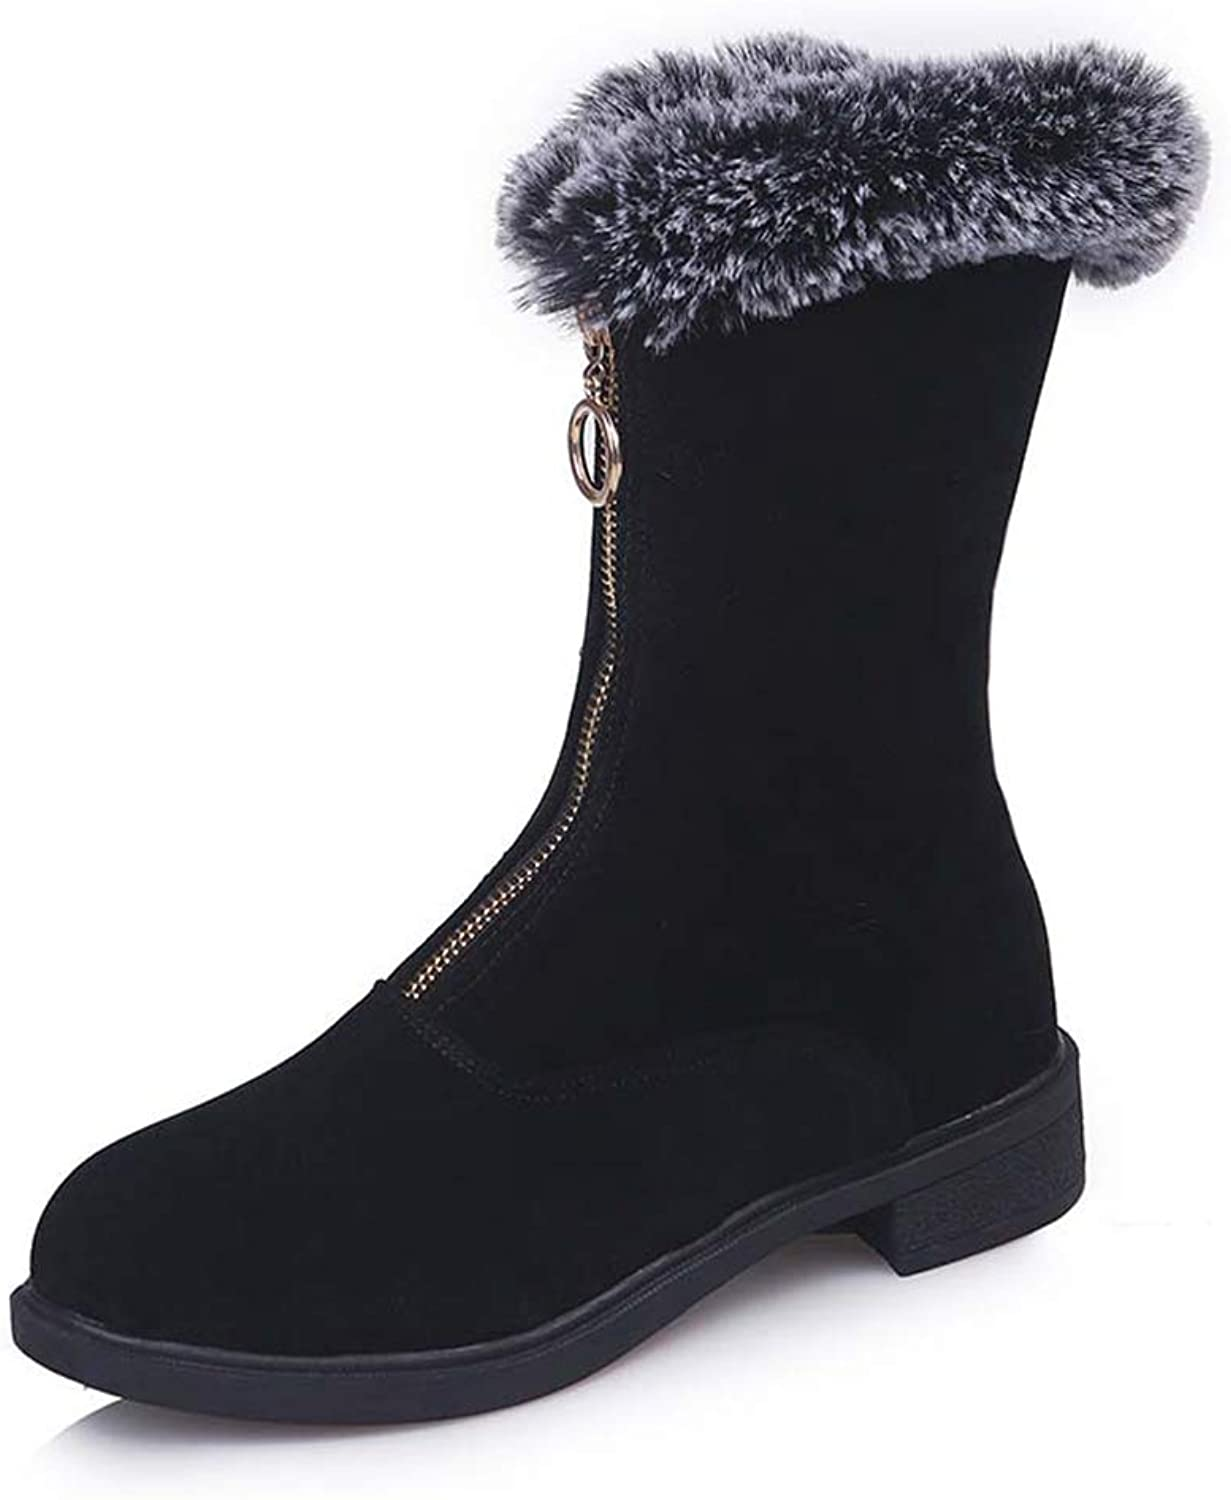 Zarbrina Womens Fur Lined Low Platform Mid Calf Ankle Boots Fashion Round Toe Rubber Sole Slip On Zipper Short Plush Winter Warm Snow shoes